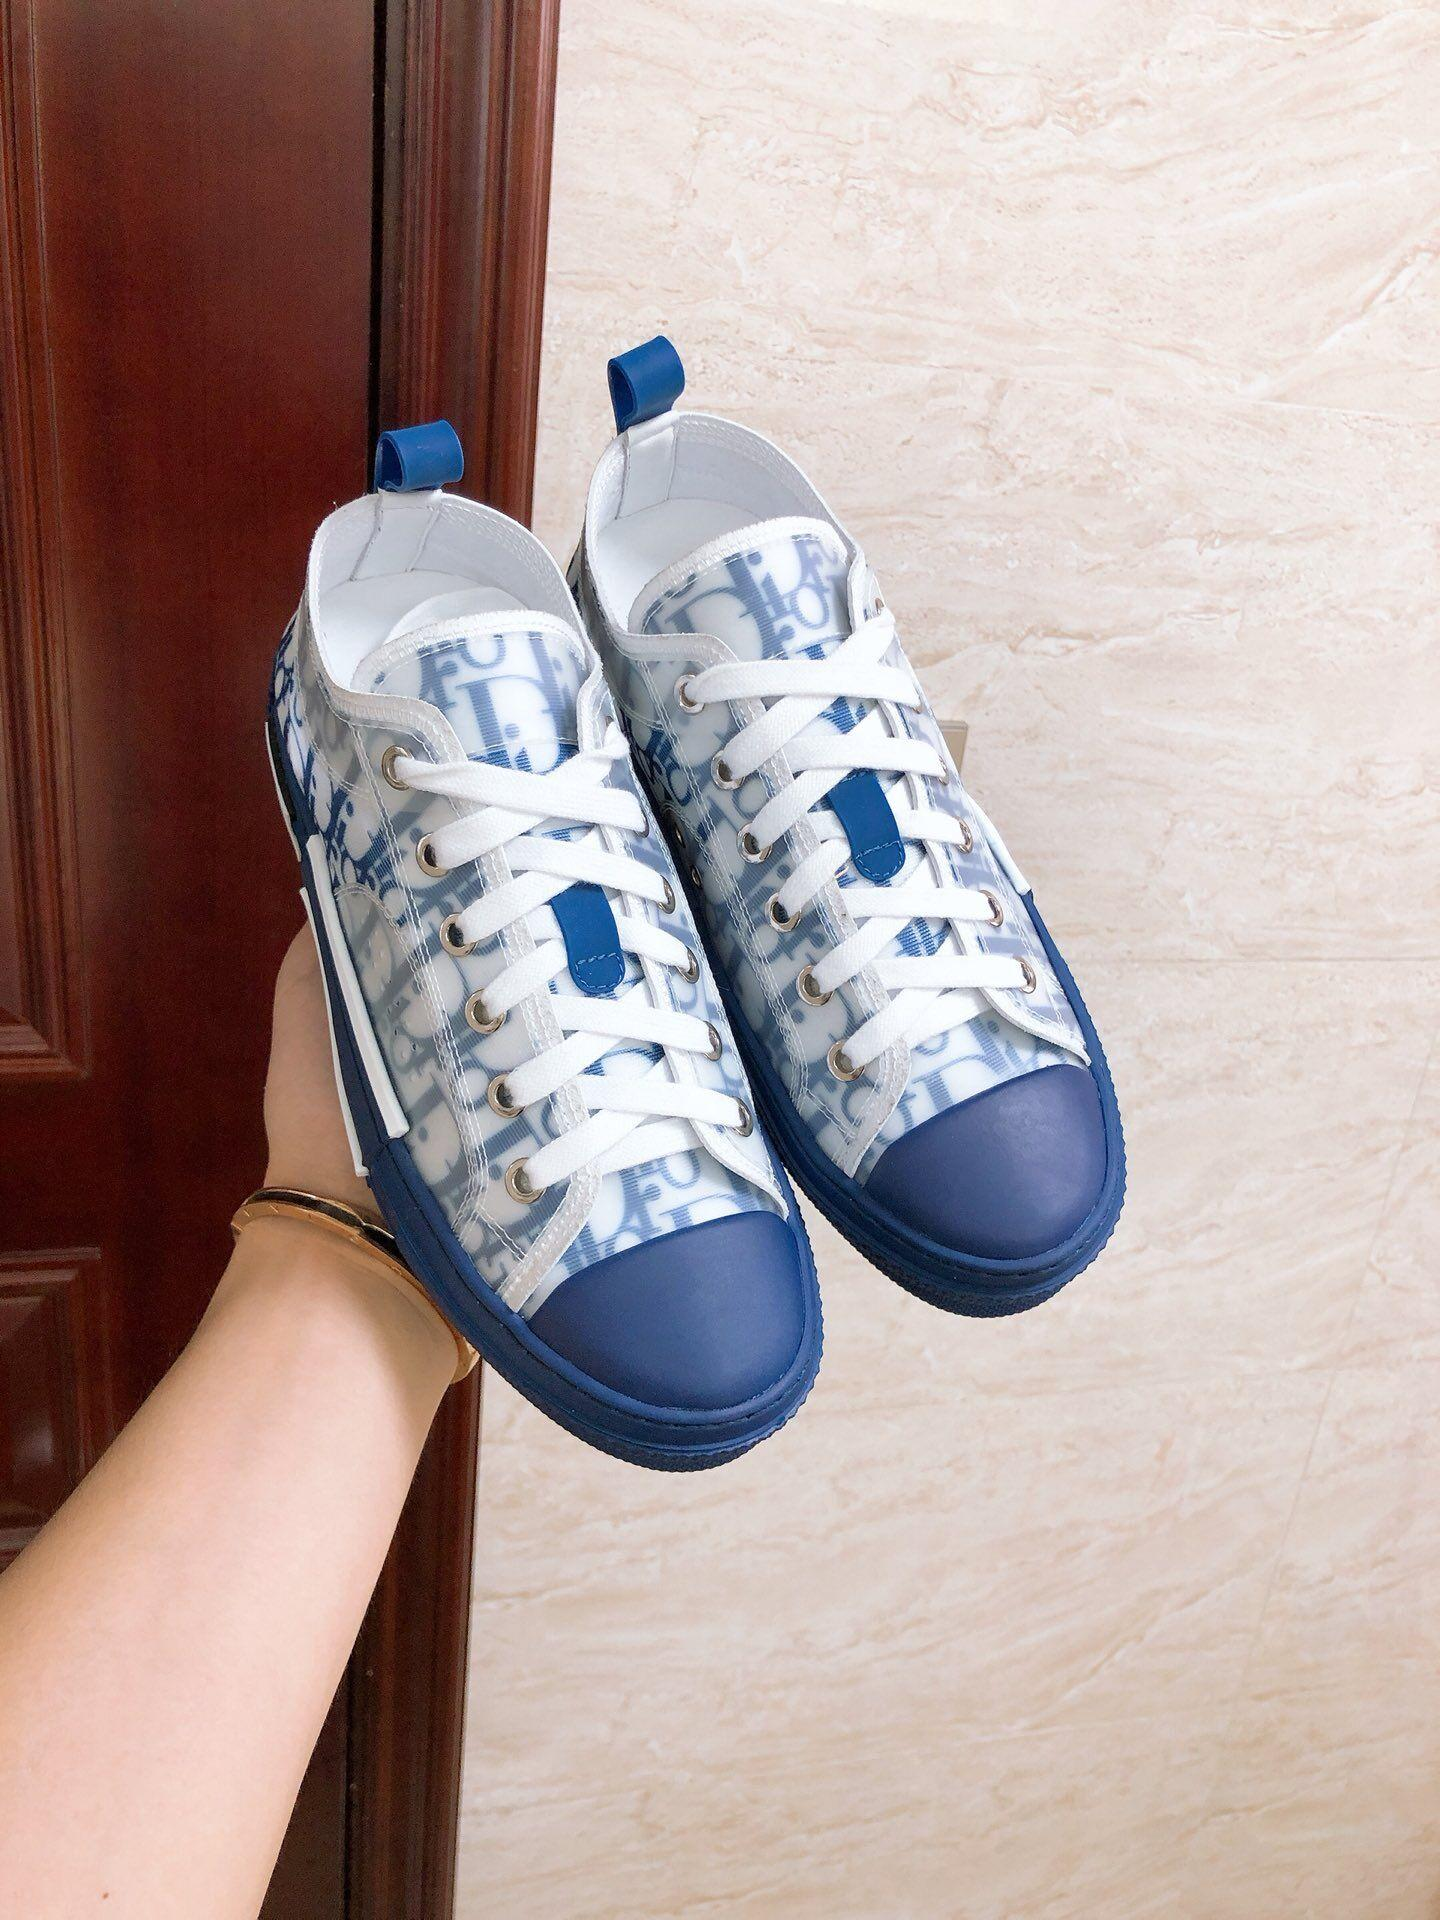 B23 LOW-TOP SNEAKER IN BLUE DIOR OBLIQUE DIOR SNEAKER DIOR SHOES  10